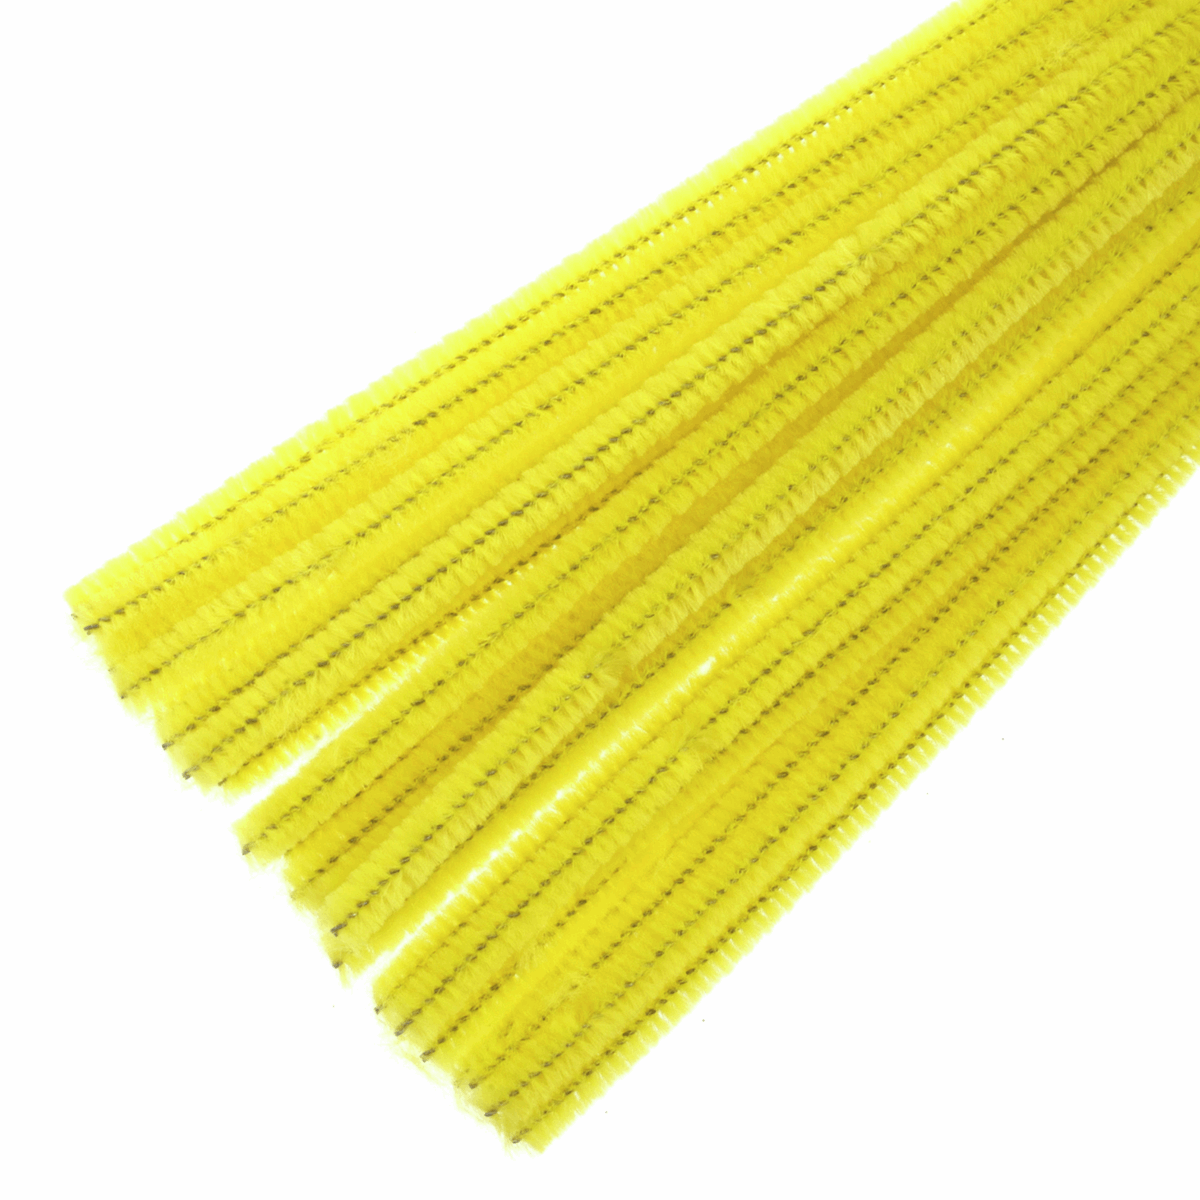 Picture of Chenilles: 30cm x 6mm: Yellow: 30 Pieces